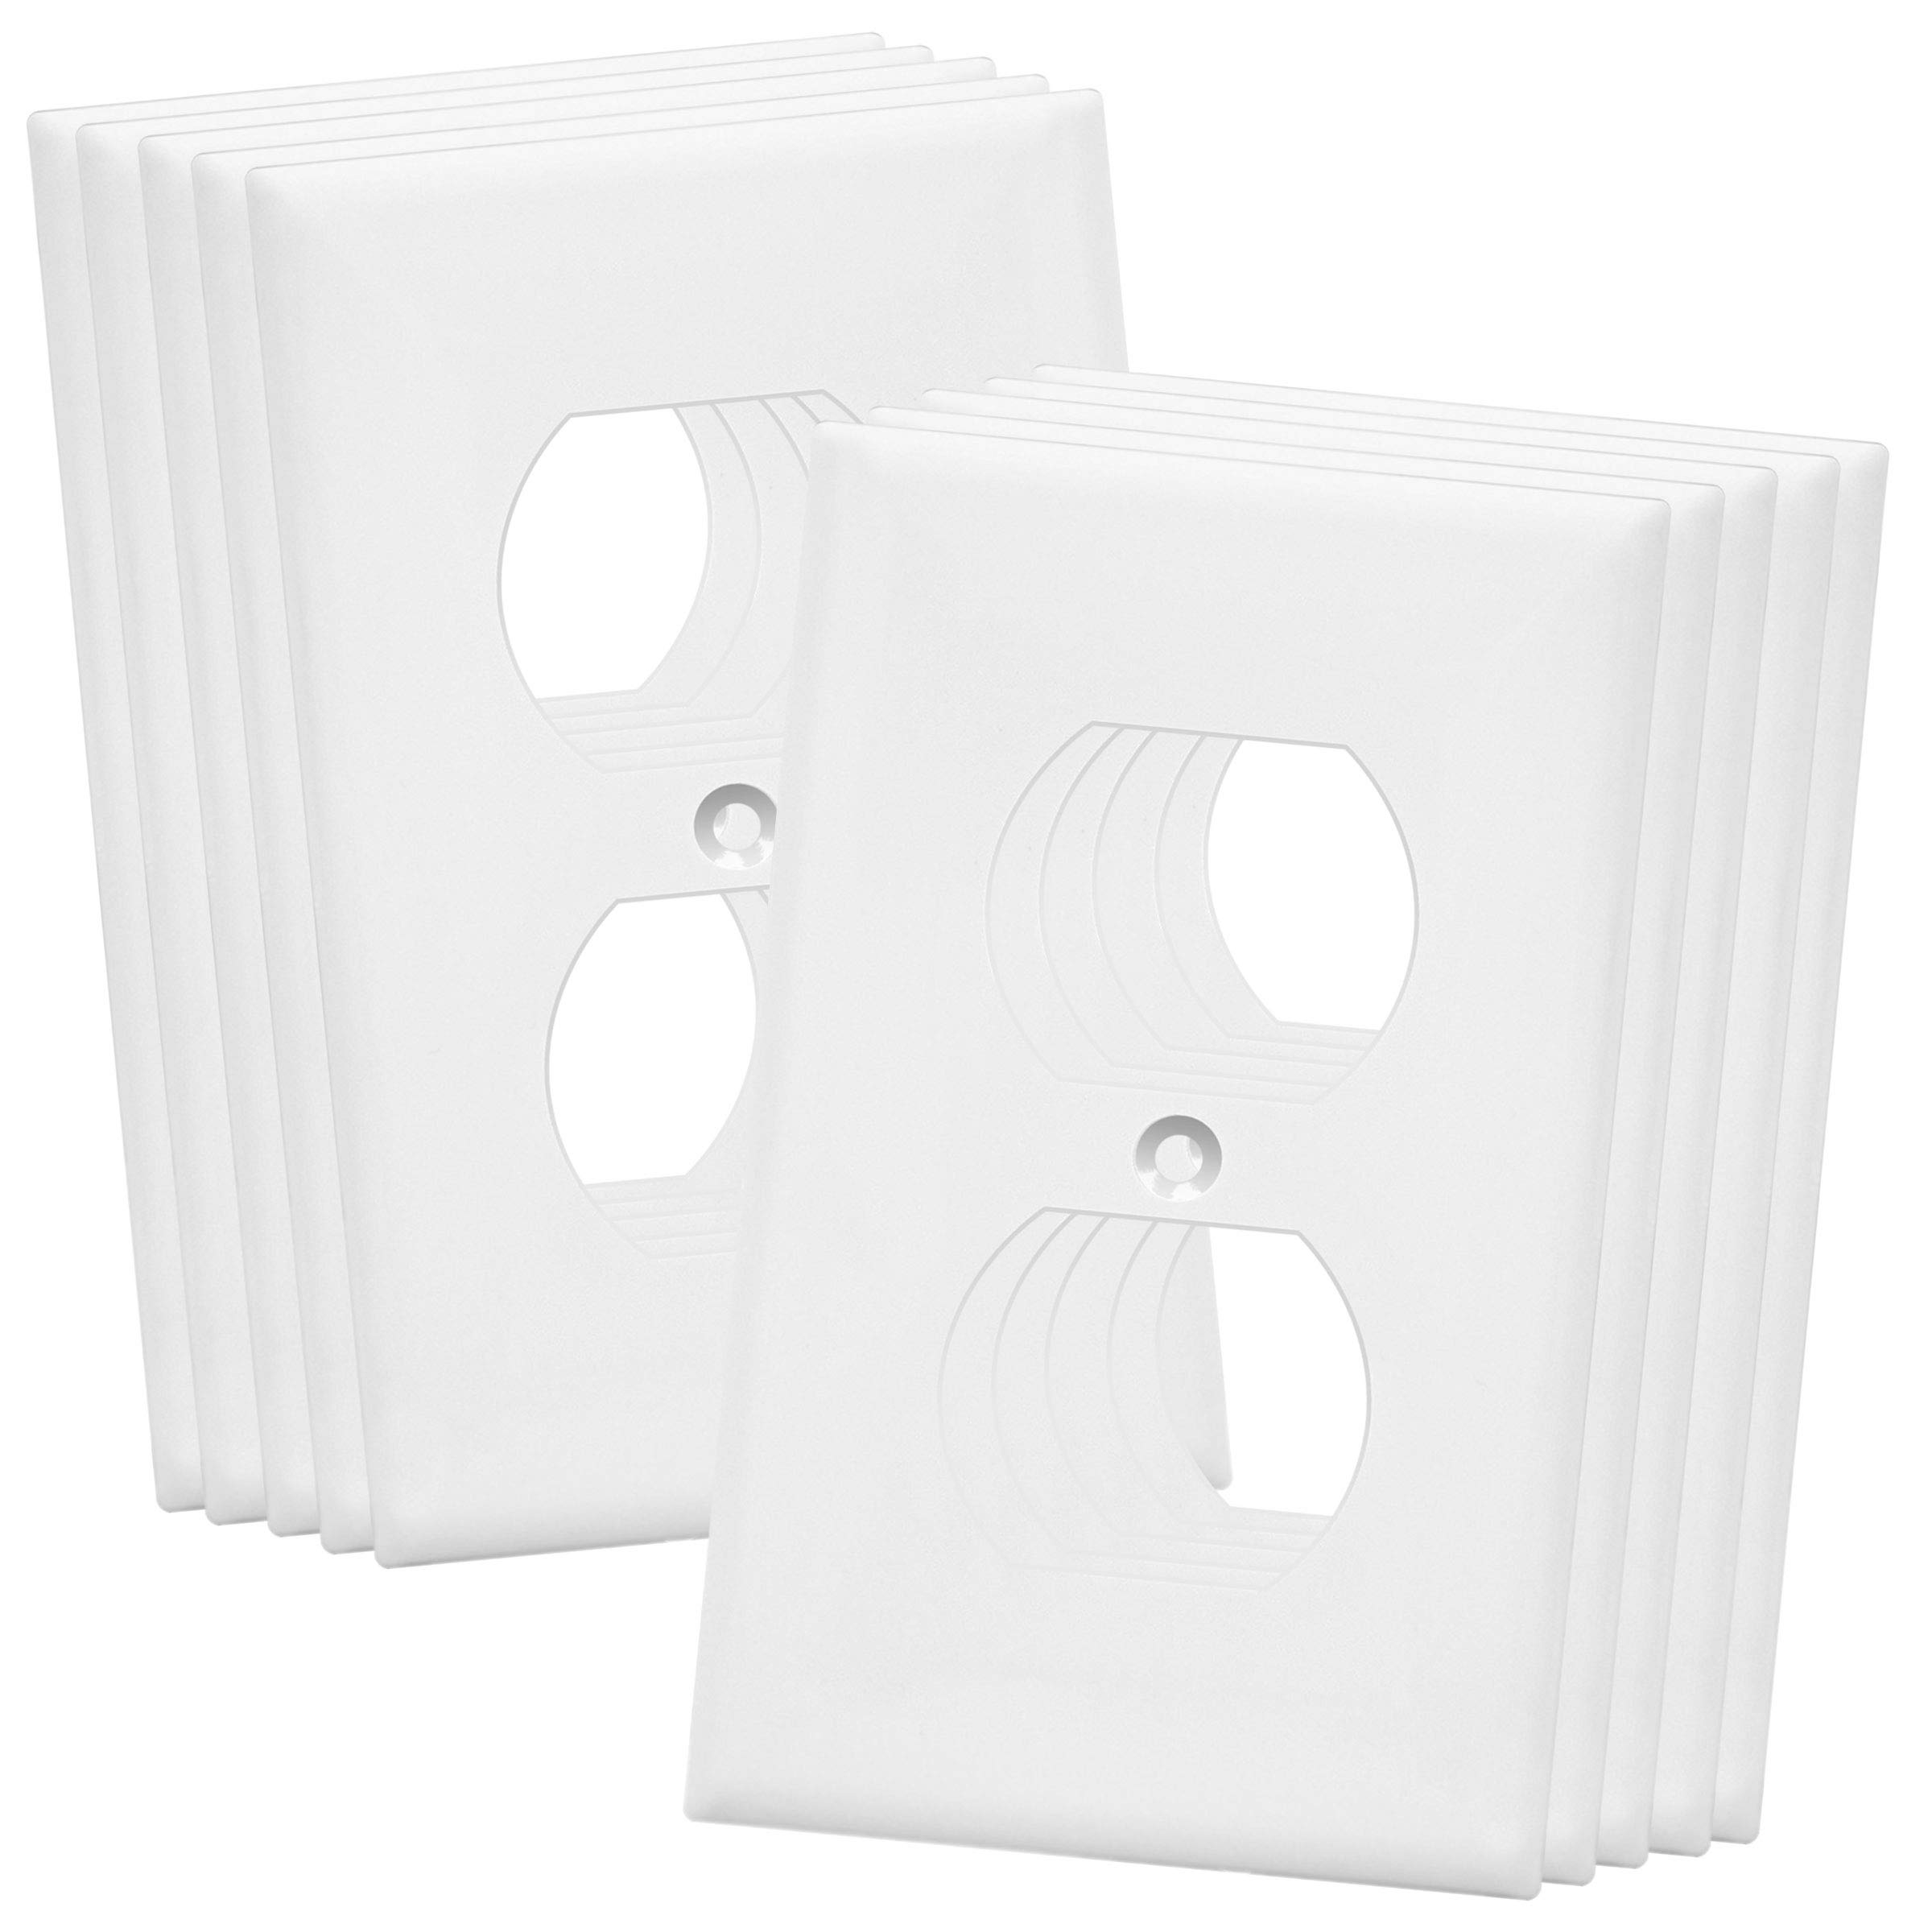 ENERLITES Duplex Receptacle Outlet Wall Plate, Over-Size 1-Gang 5.5'' x 3.5'', Polycarbonate Thermoplastic, 8821O-W-10PCS, White (10 Pack), 10 by ENERLITES